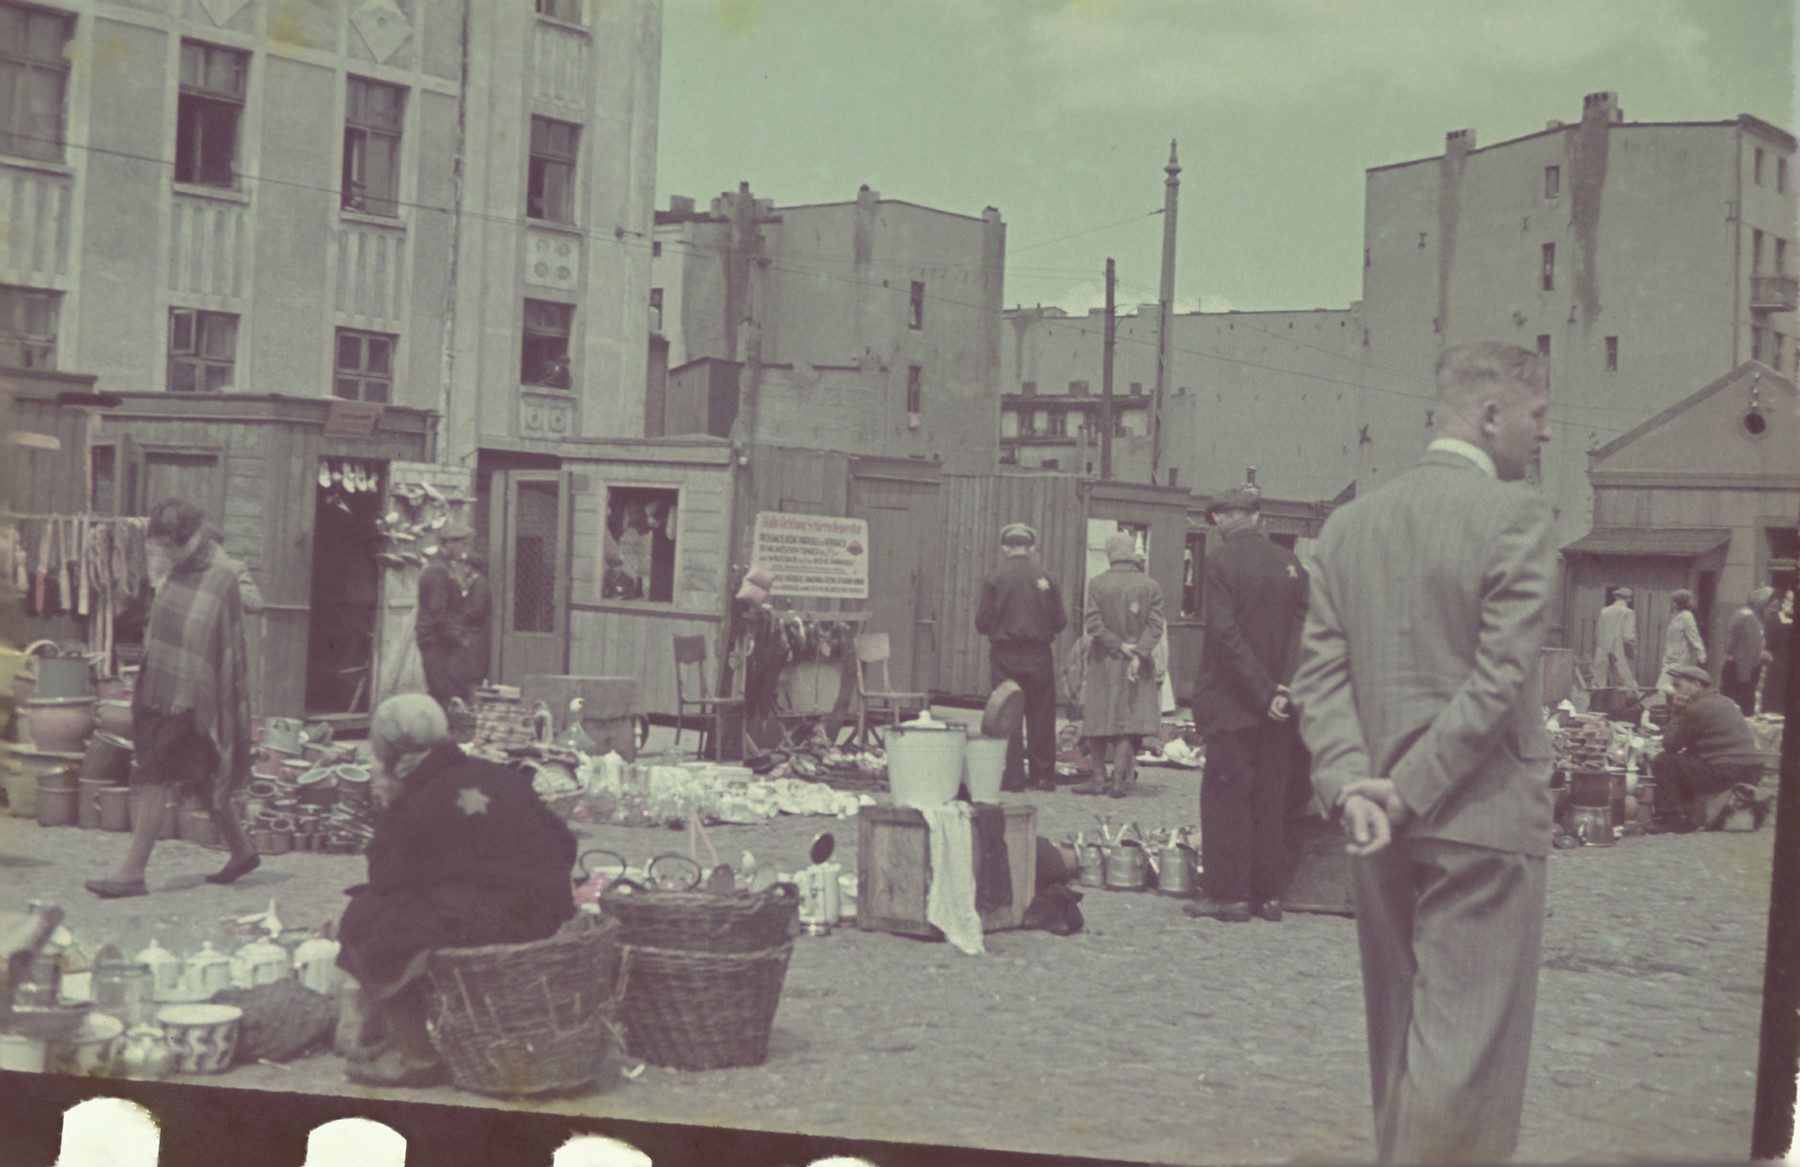 A market in the Lodz ghetto.    Hans Biebow is pictured.